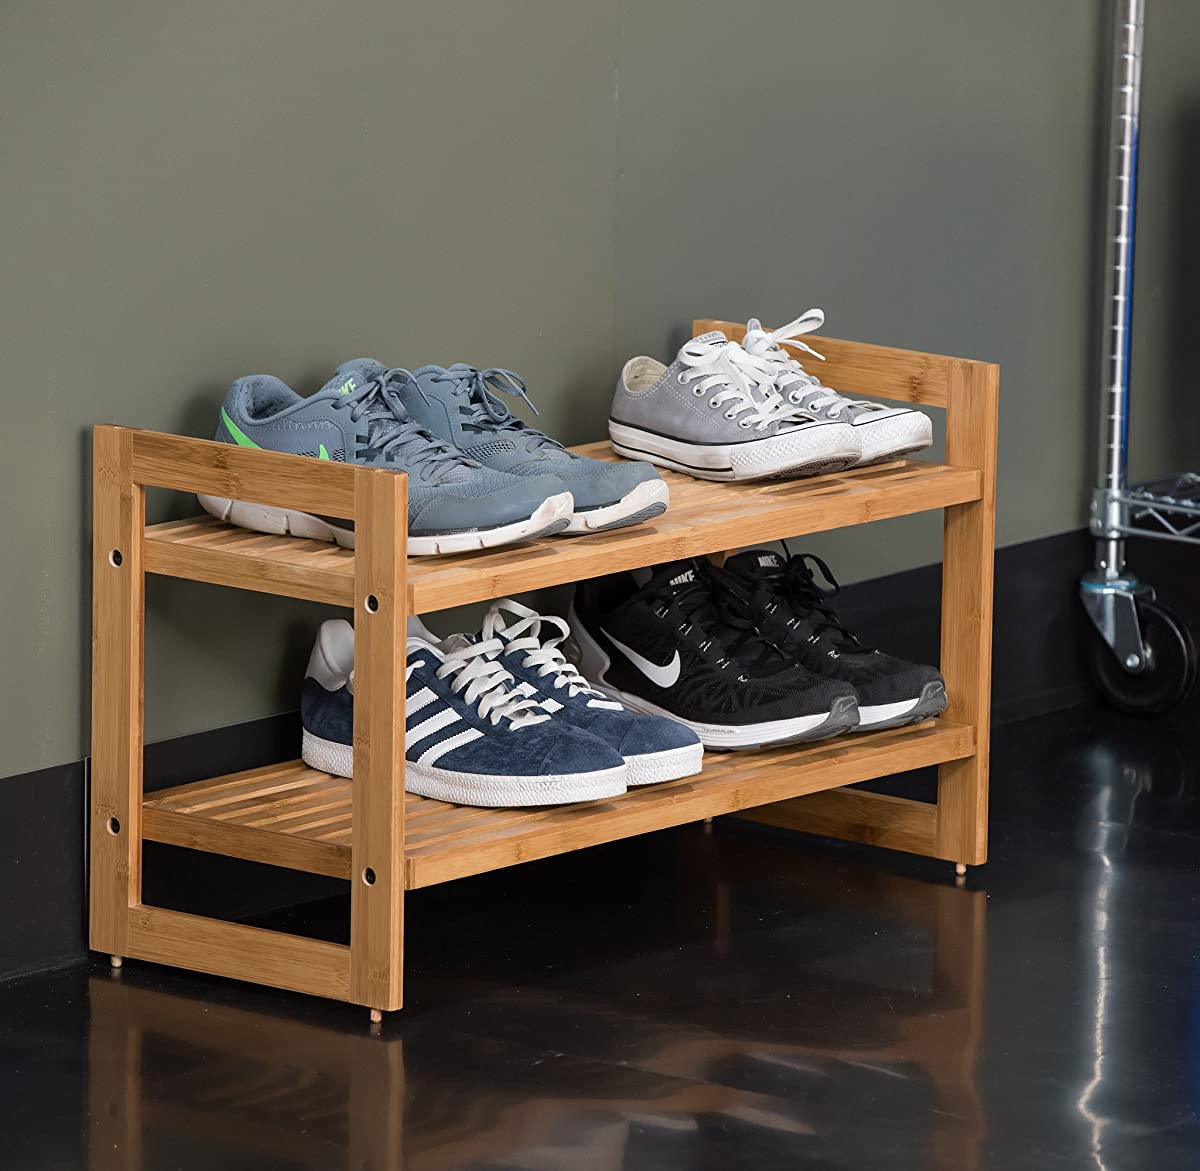 TRINITY Shoe Rack (2 Pack), Bamboo